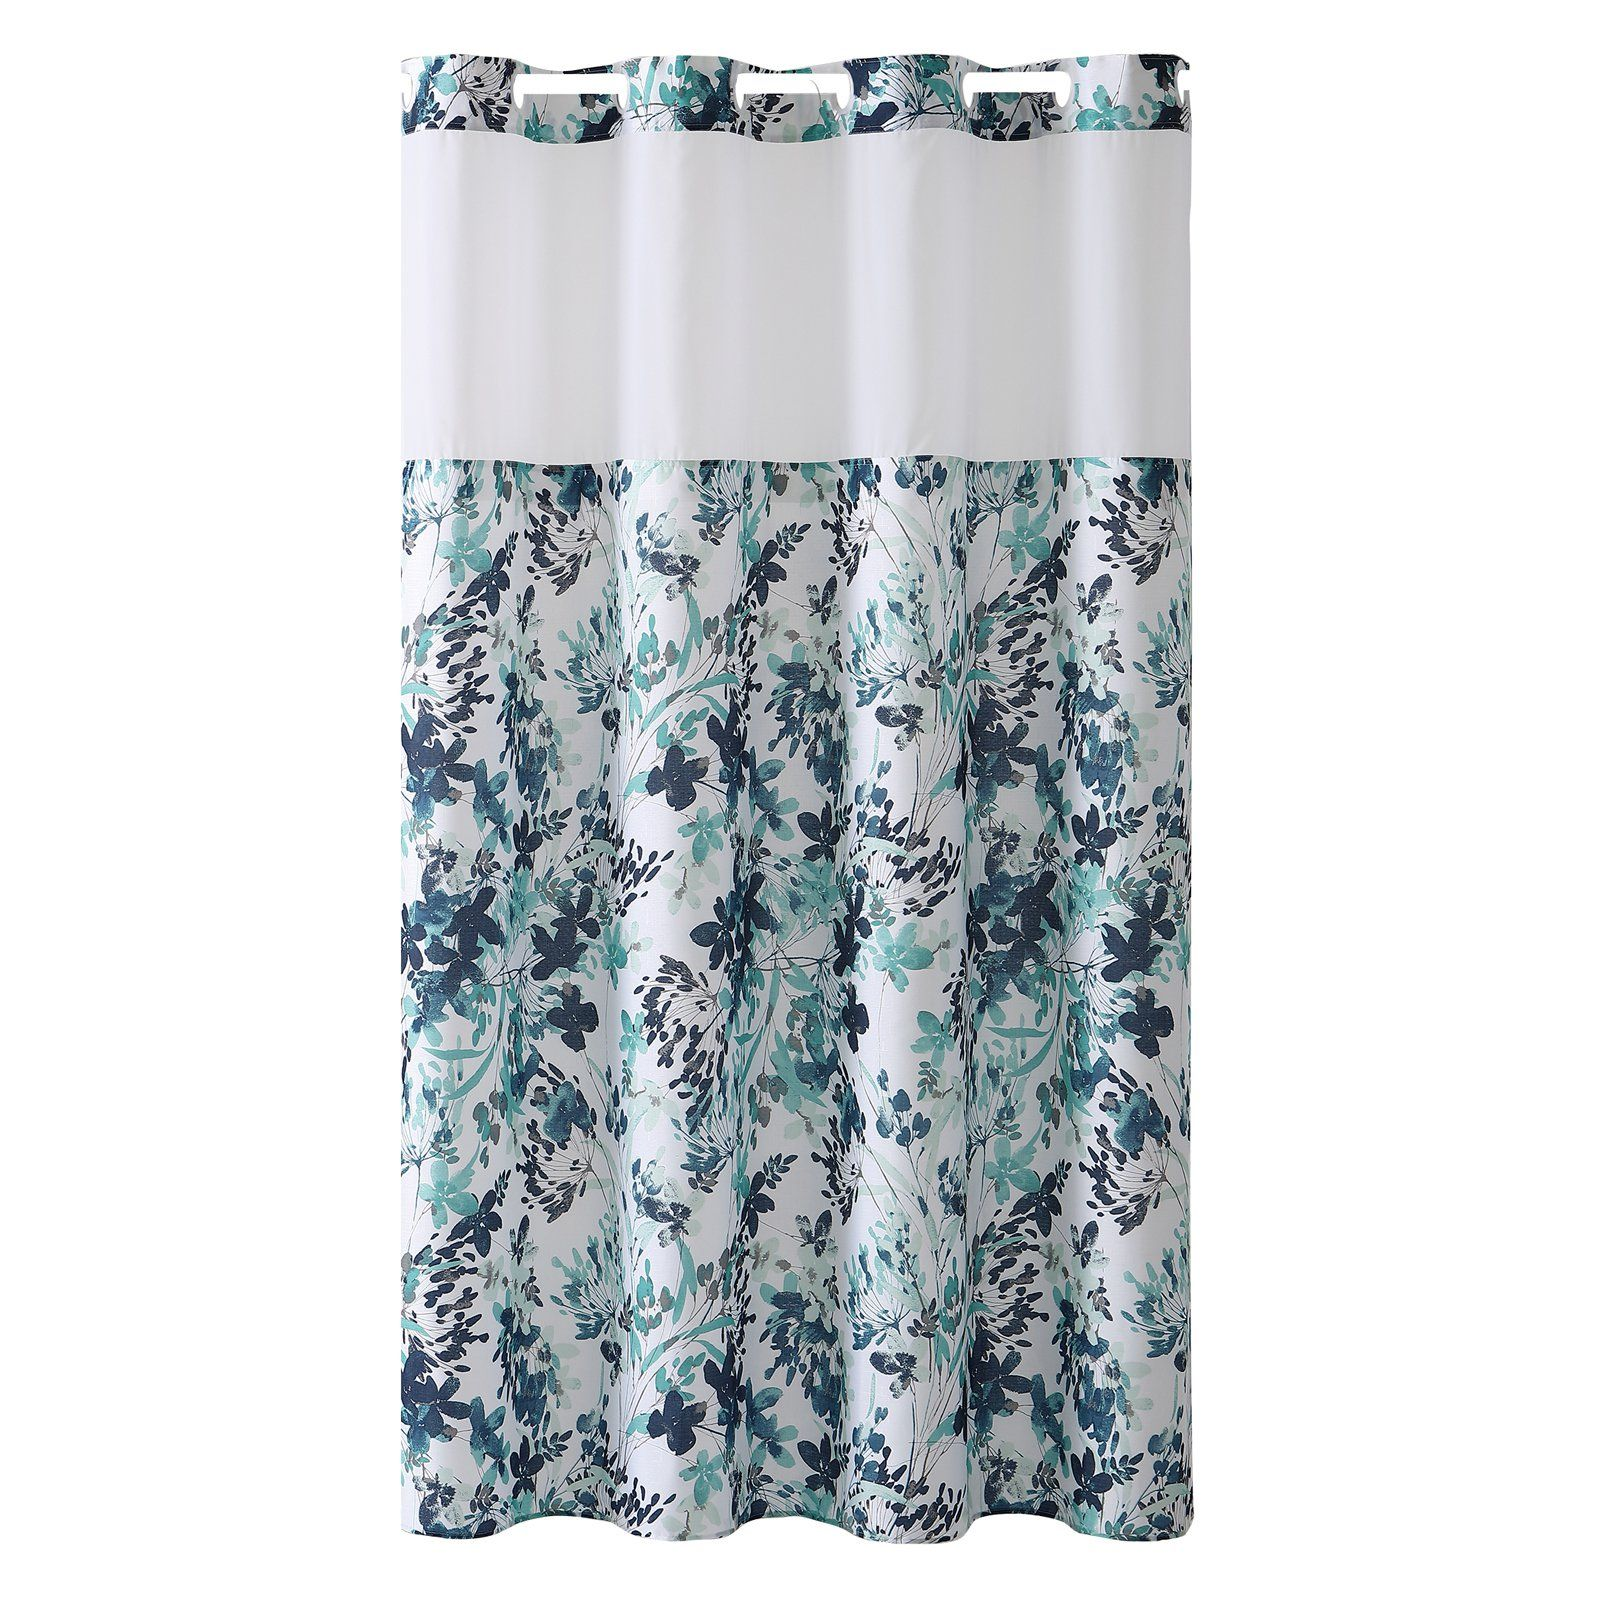 Hookless Water Color Print Polyester Shower Curtain Aqua